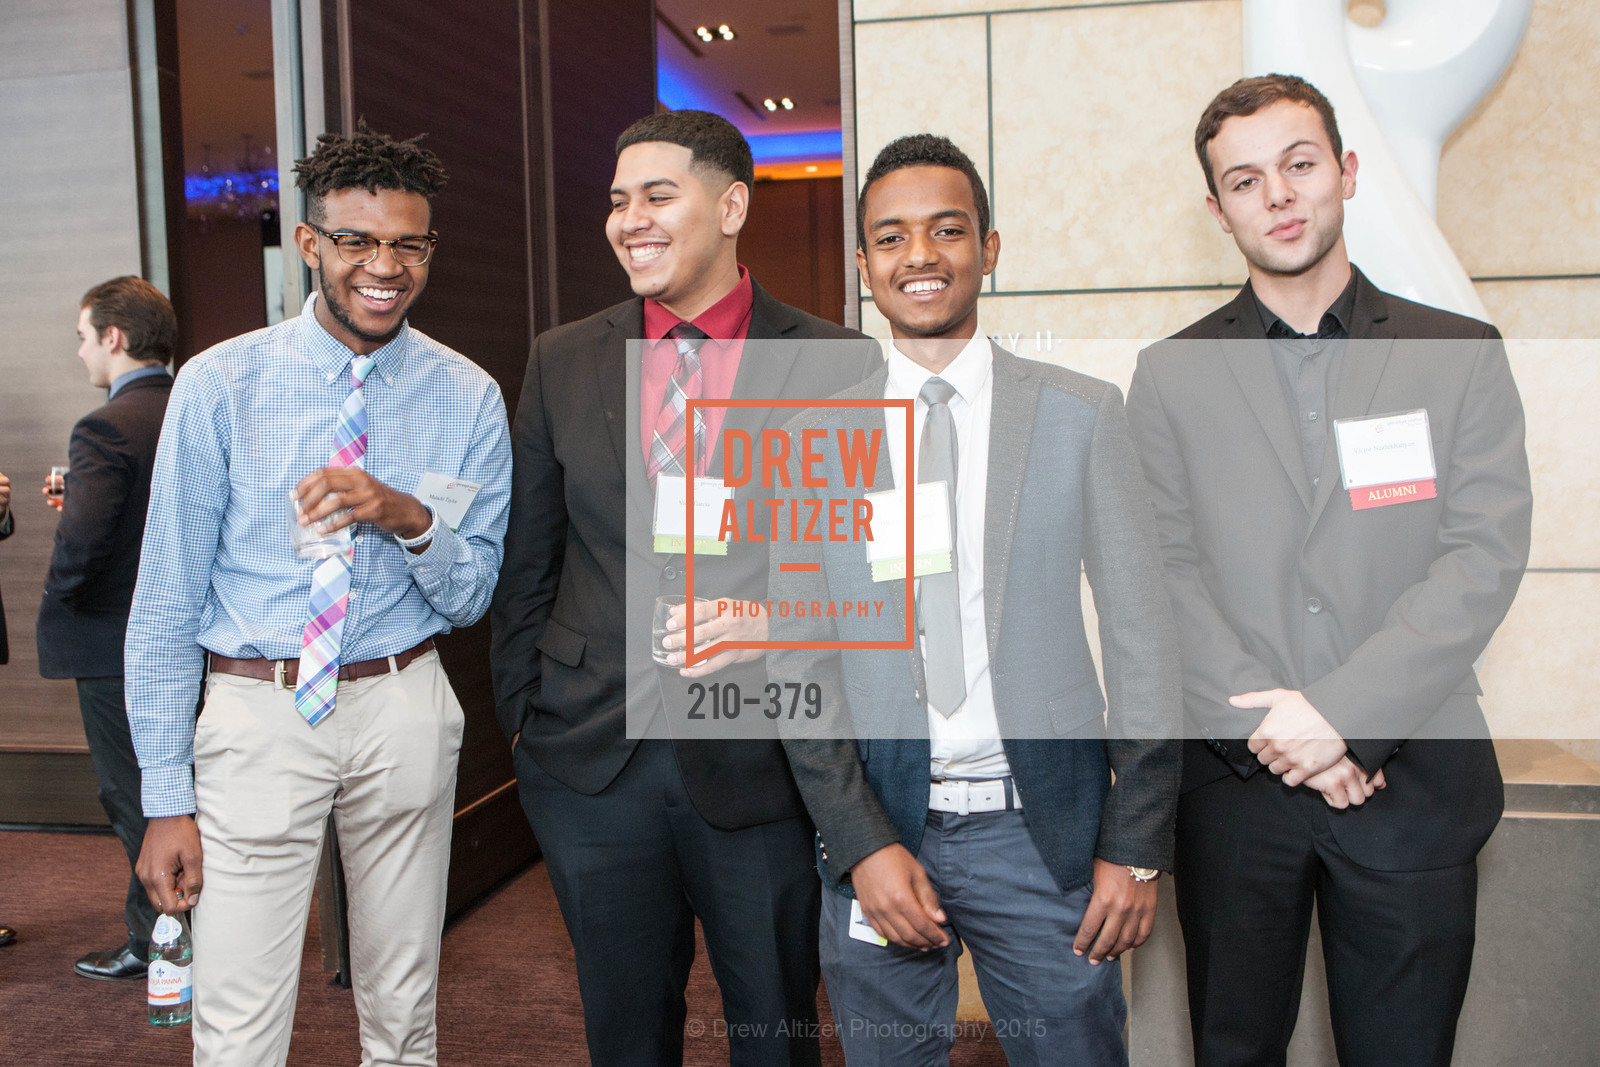 Malachi Taylor, Vidal Garcia, Abdulahi Mohammed, Victor Nazlukhanyan, Genesys Works Bay Area Presents BREAKING THROUGH, St. Regis Hotel. 125 3rd St, October 14th, 2015,Drew Altizer, Drew Altizer Photography, full-service agency, private events, San Francisco photographer, photographer california